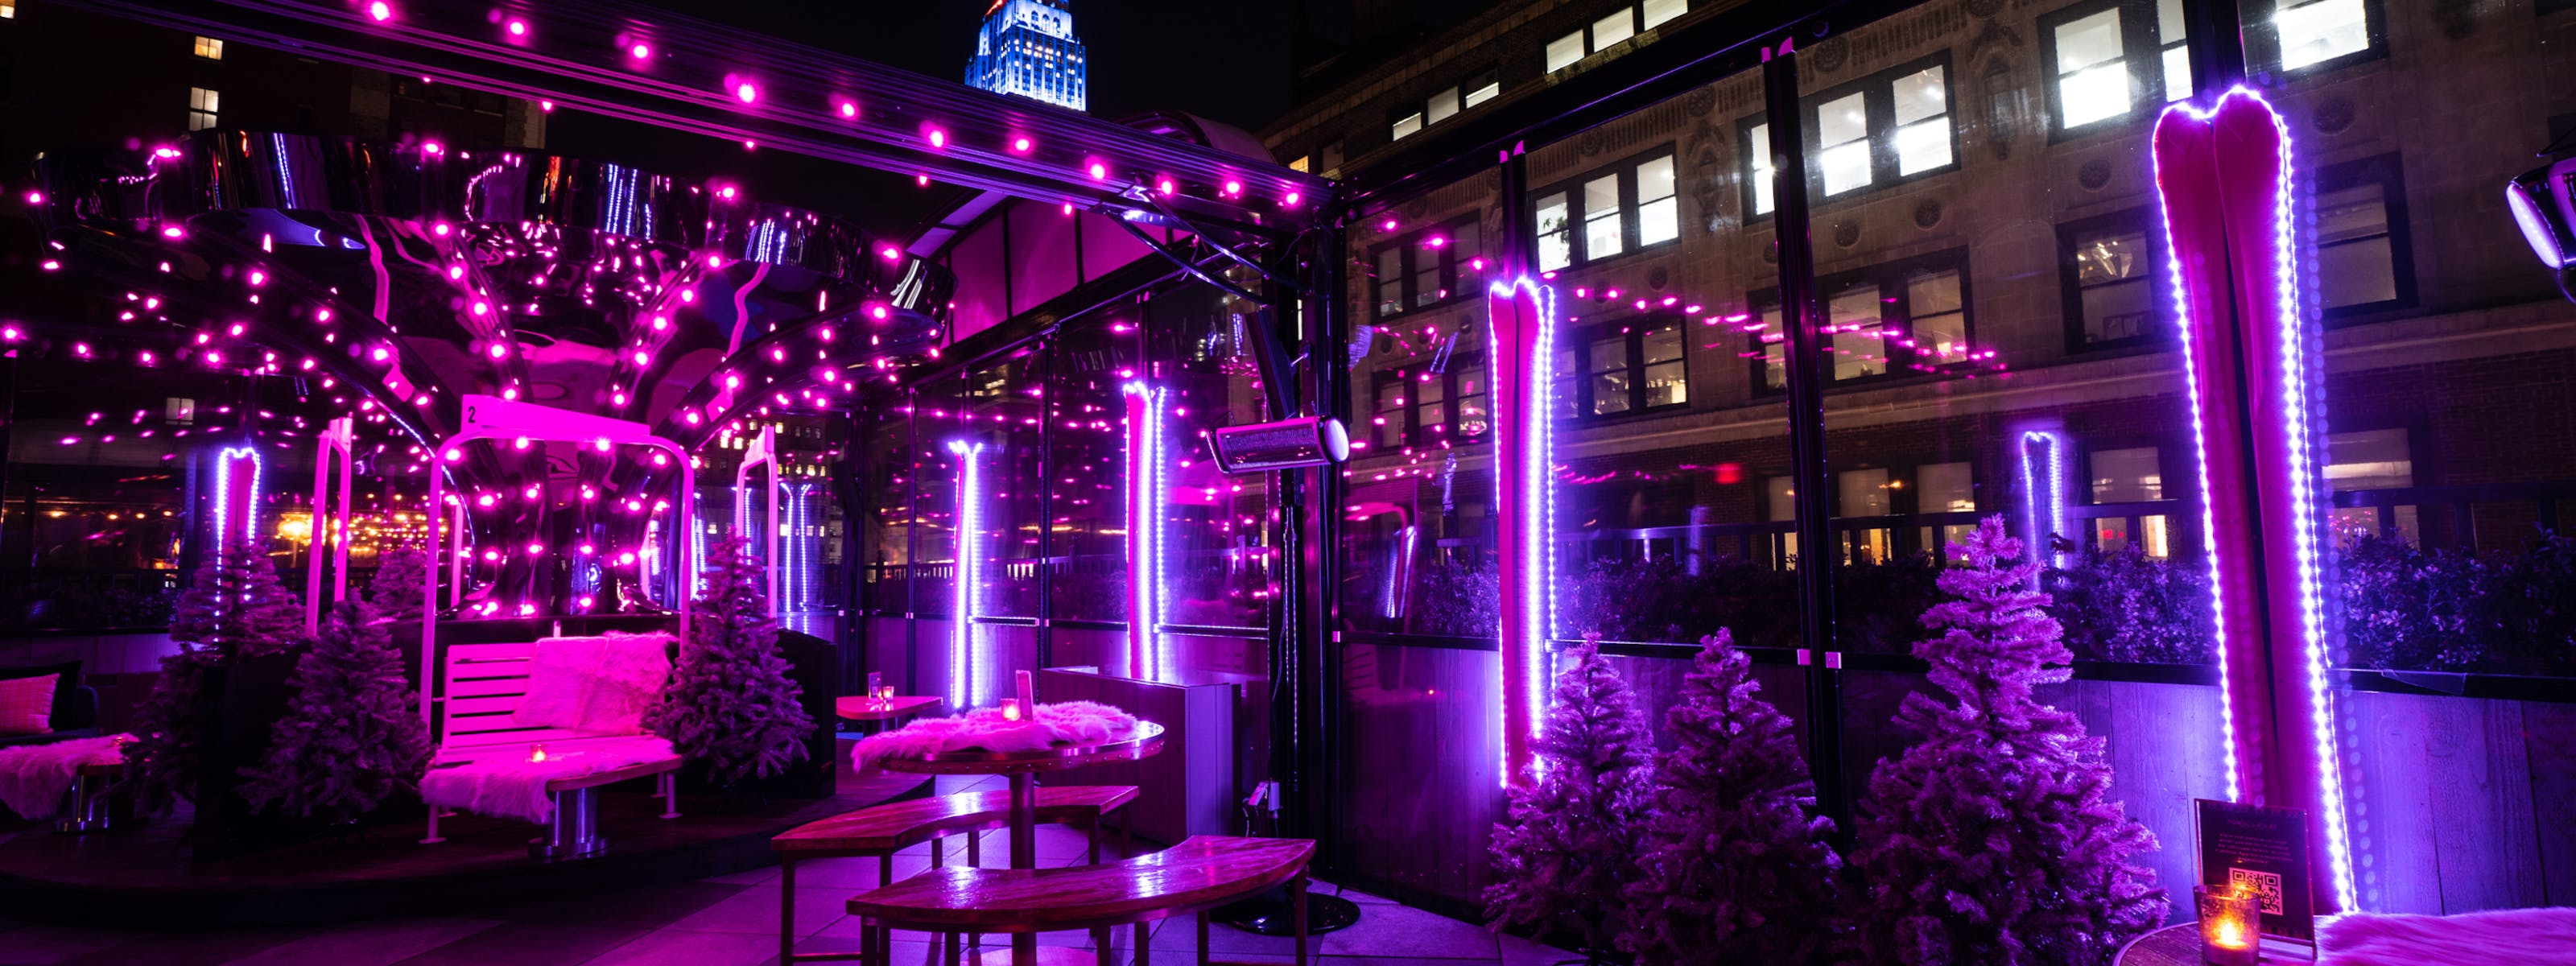 6 NYC Rooftops With Outdoor Heat Lamps